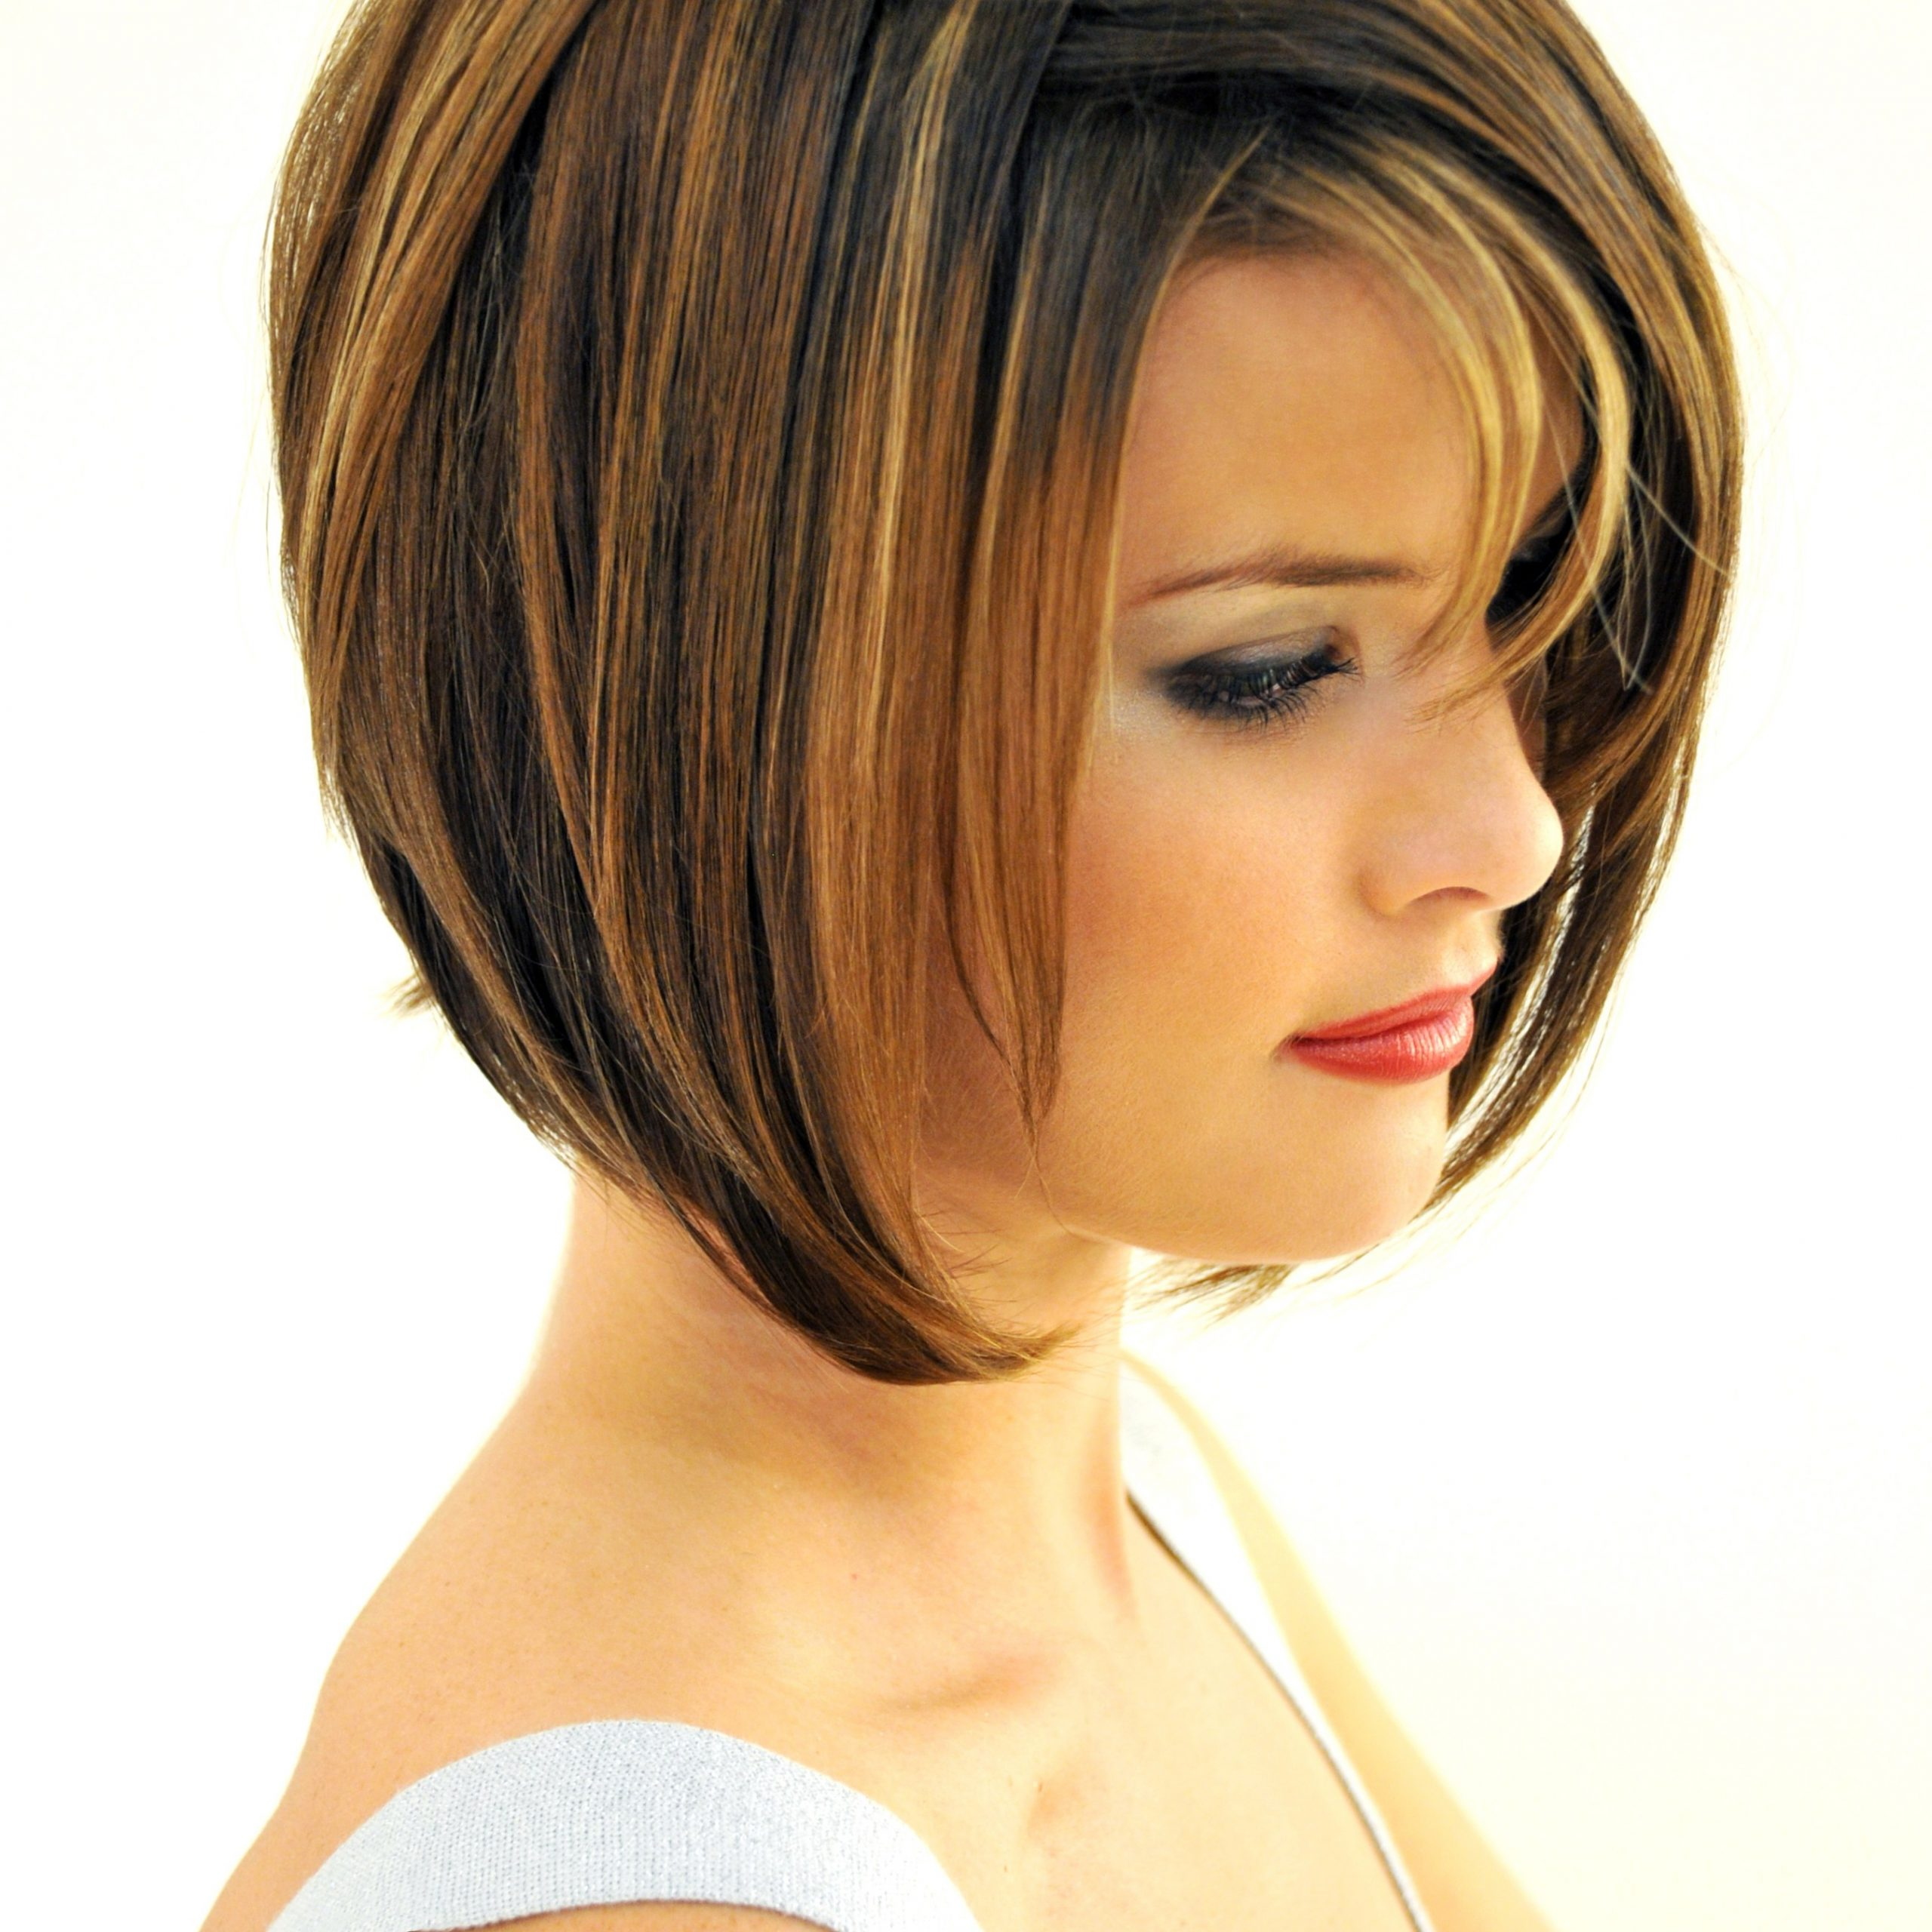 Fashionable A Very Short Layered Bob Hairstyles Throughout Short Bob Hairstyles With Bangs: 4 Perfect Ideas For You (Gallery 10 of 20)